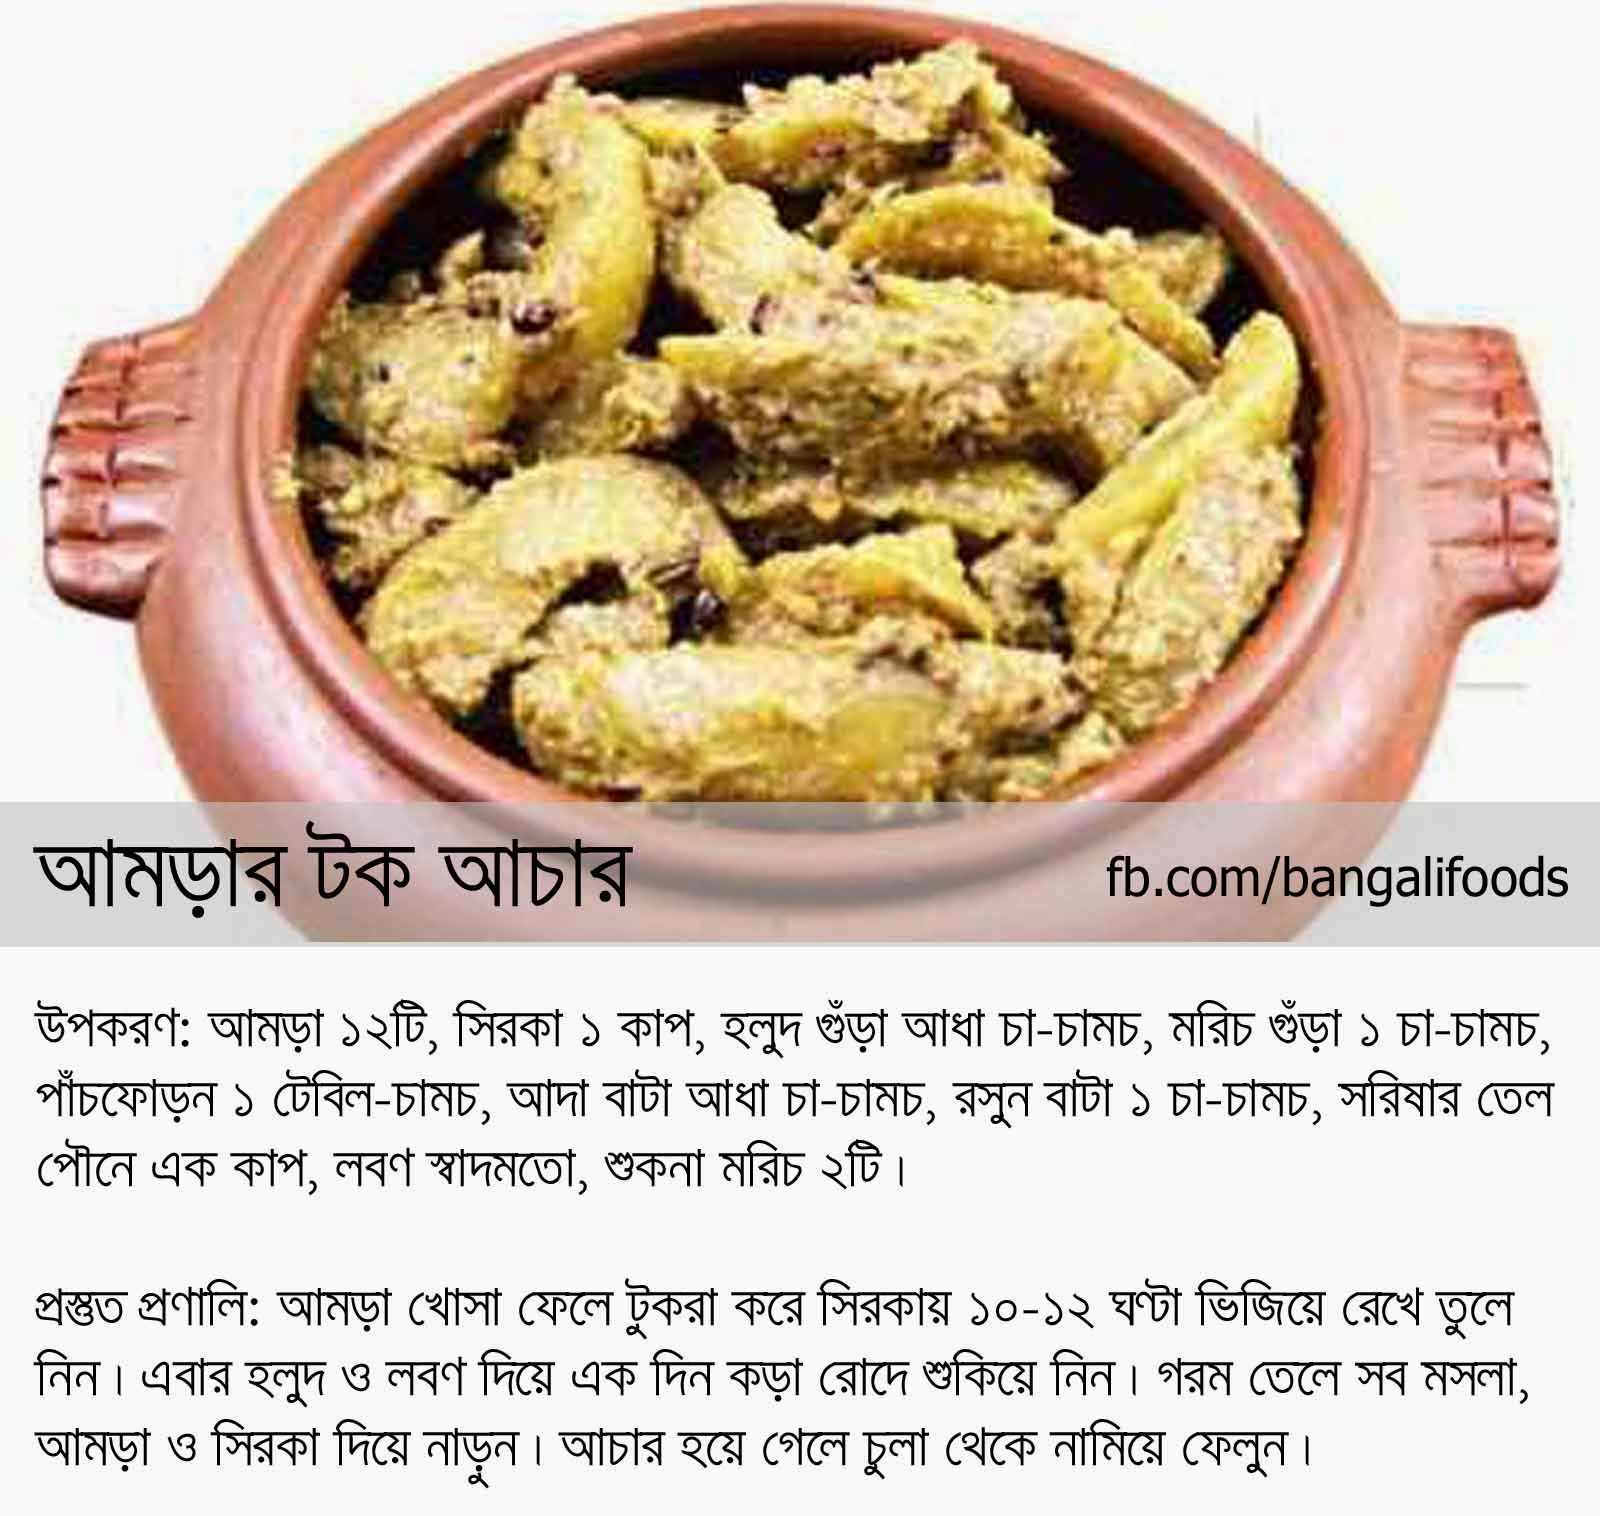 Bangali foods yummy pickles recipe in bangla spondias pinnata achar forumfinder Images